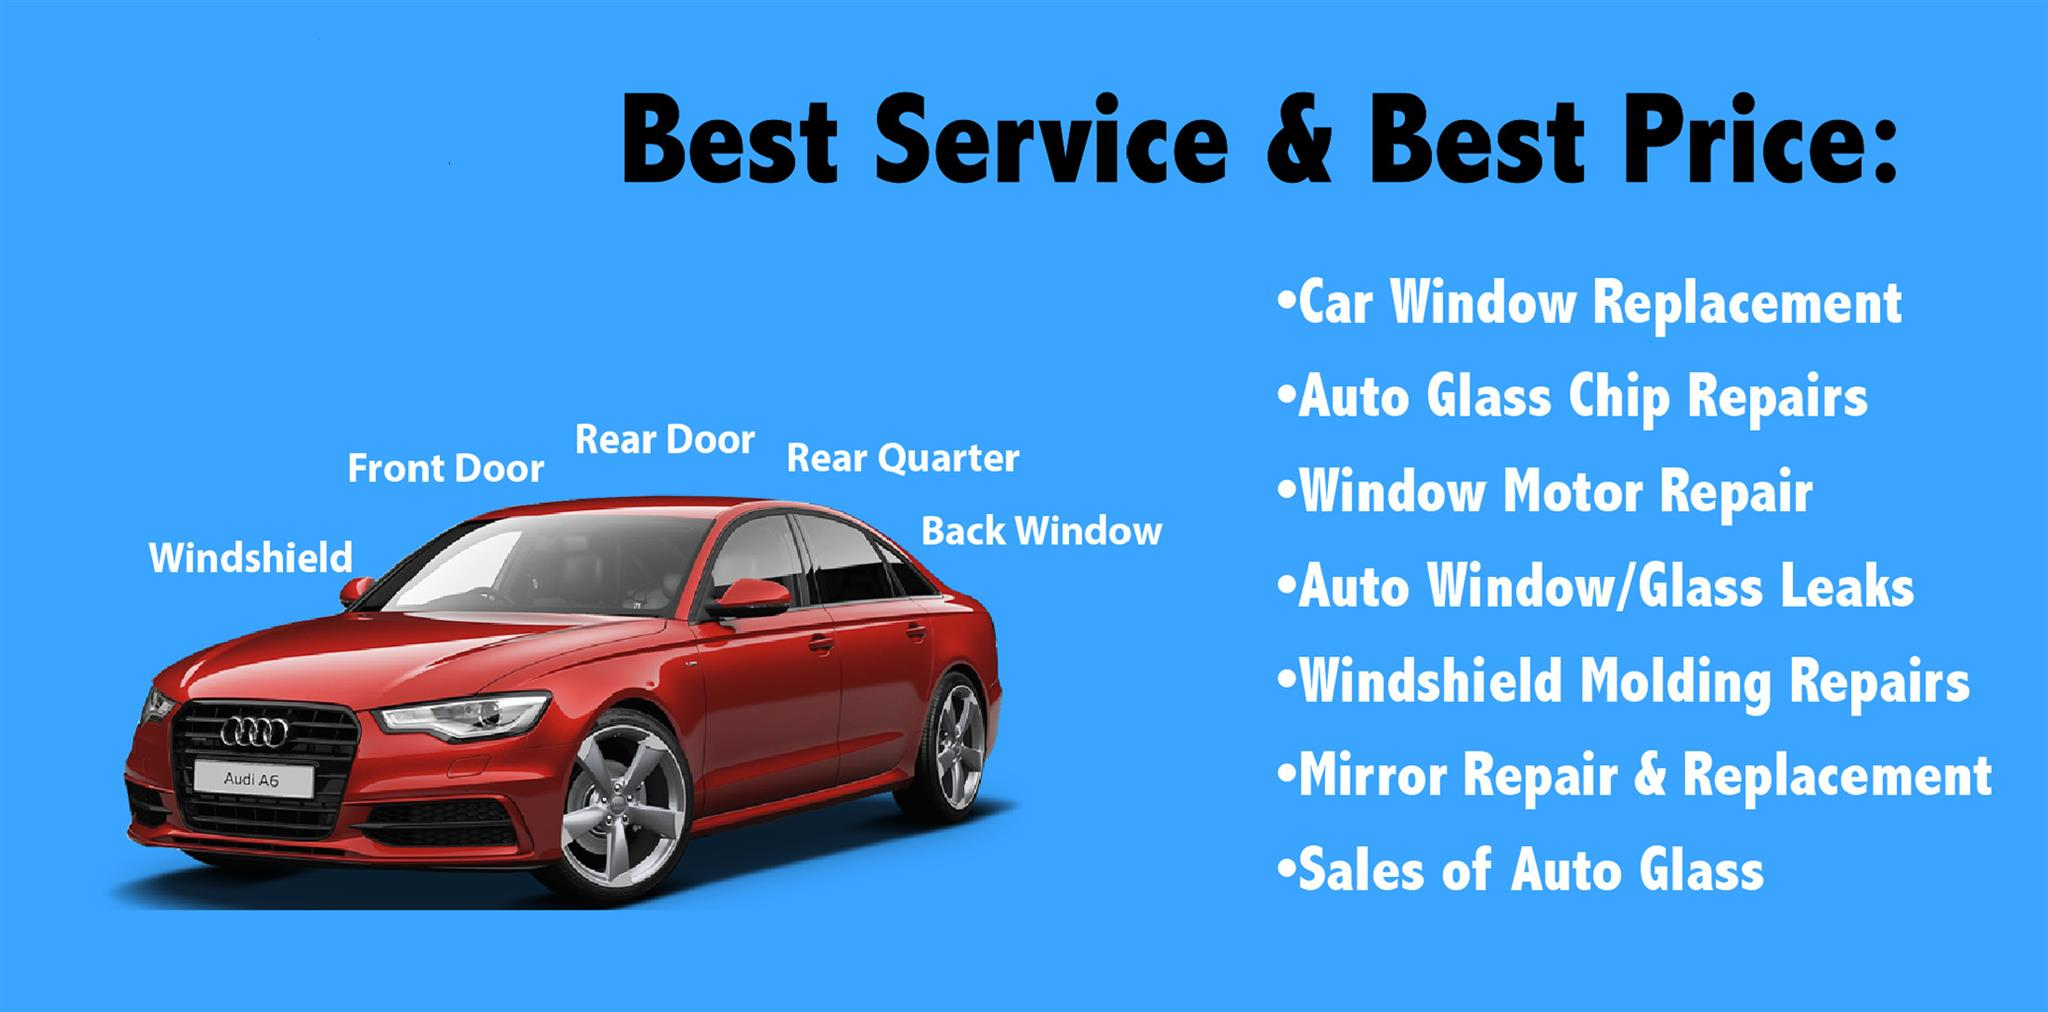 Windshield Repair Near Me >> Auto Glass Repair Near Me